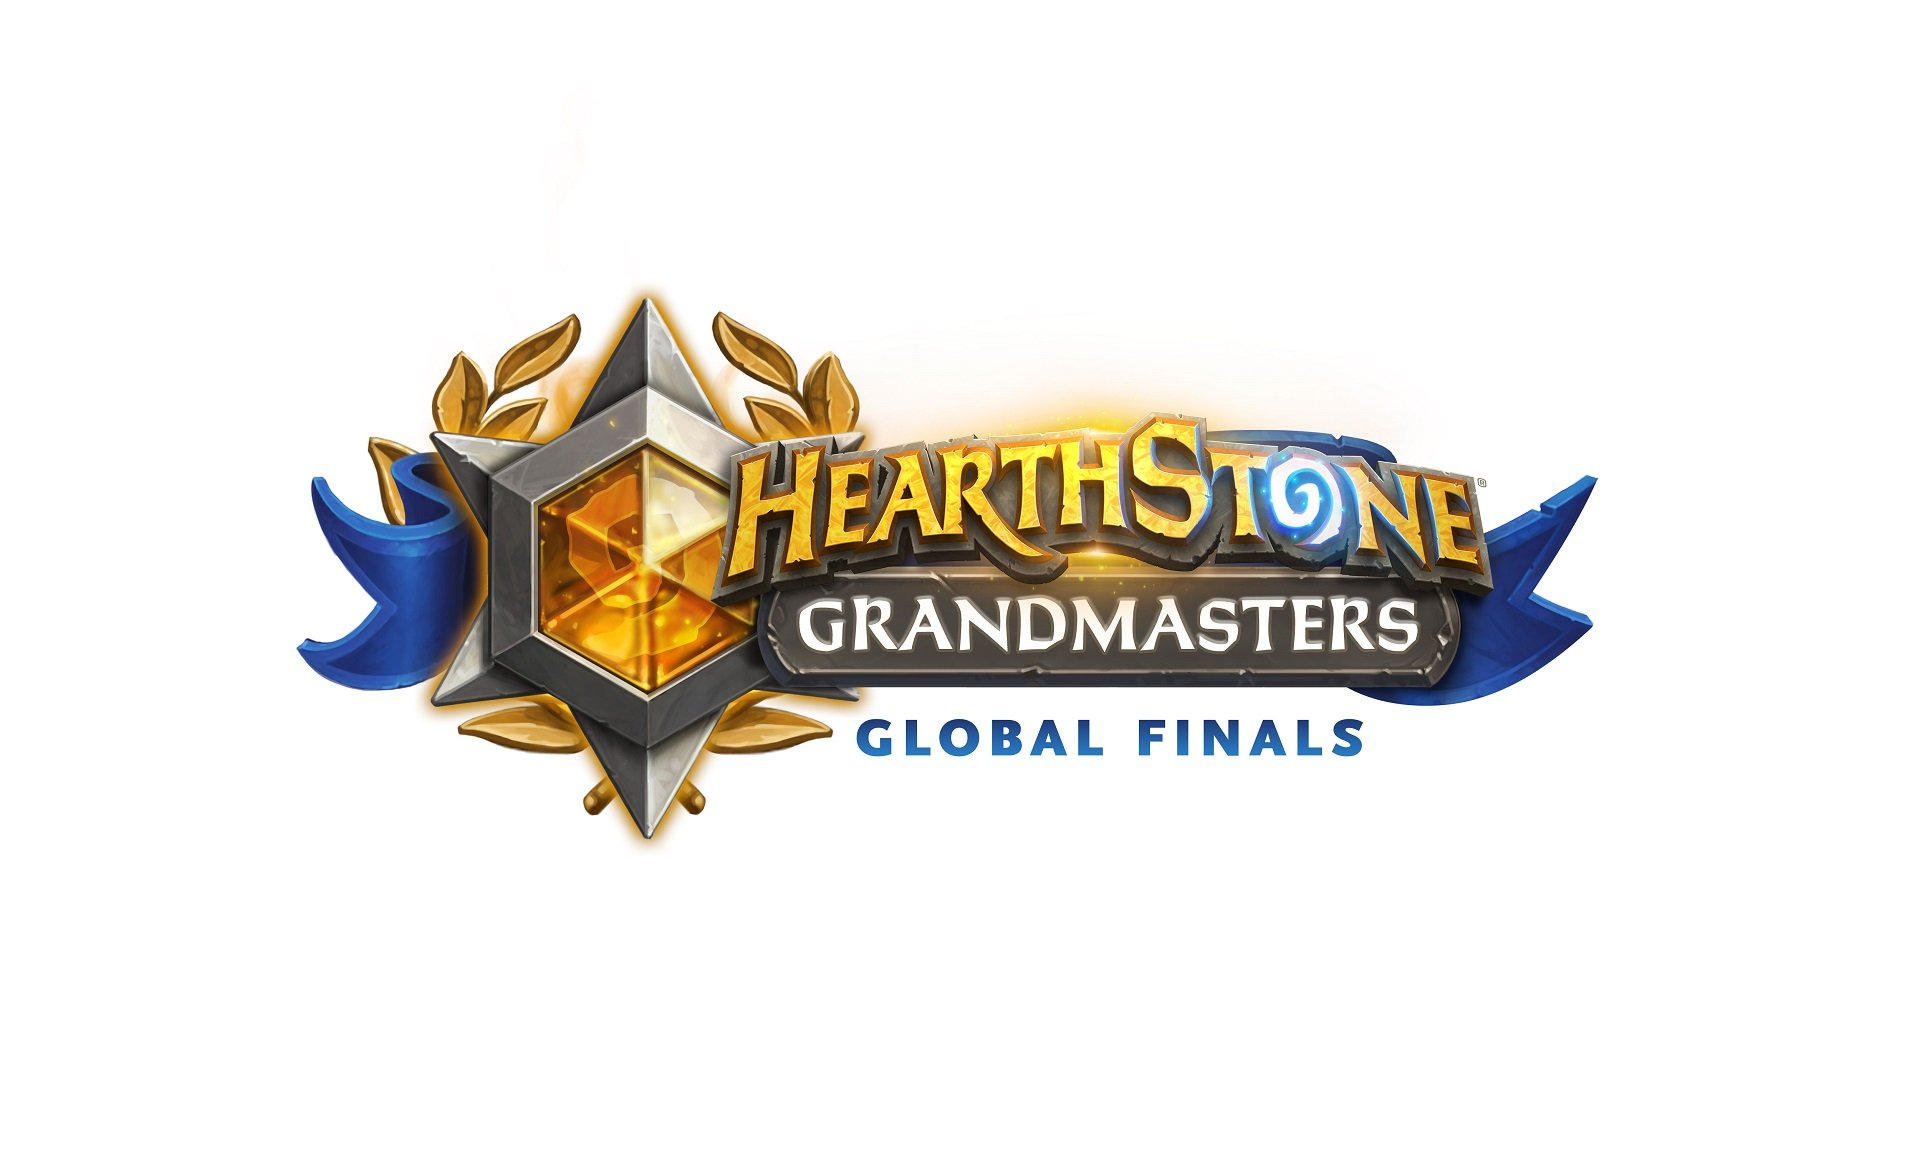 Hearthstone Global Games 2020.Hearthstone Grandmasters 2019 Finals Prize Pool Schedule